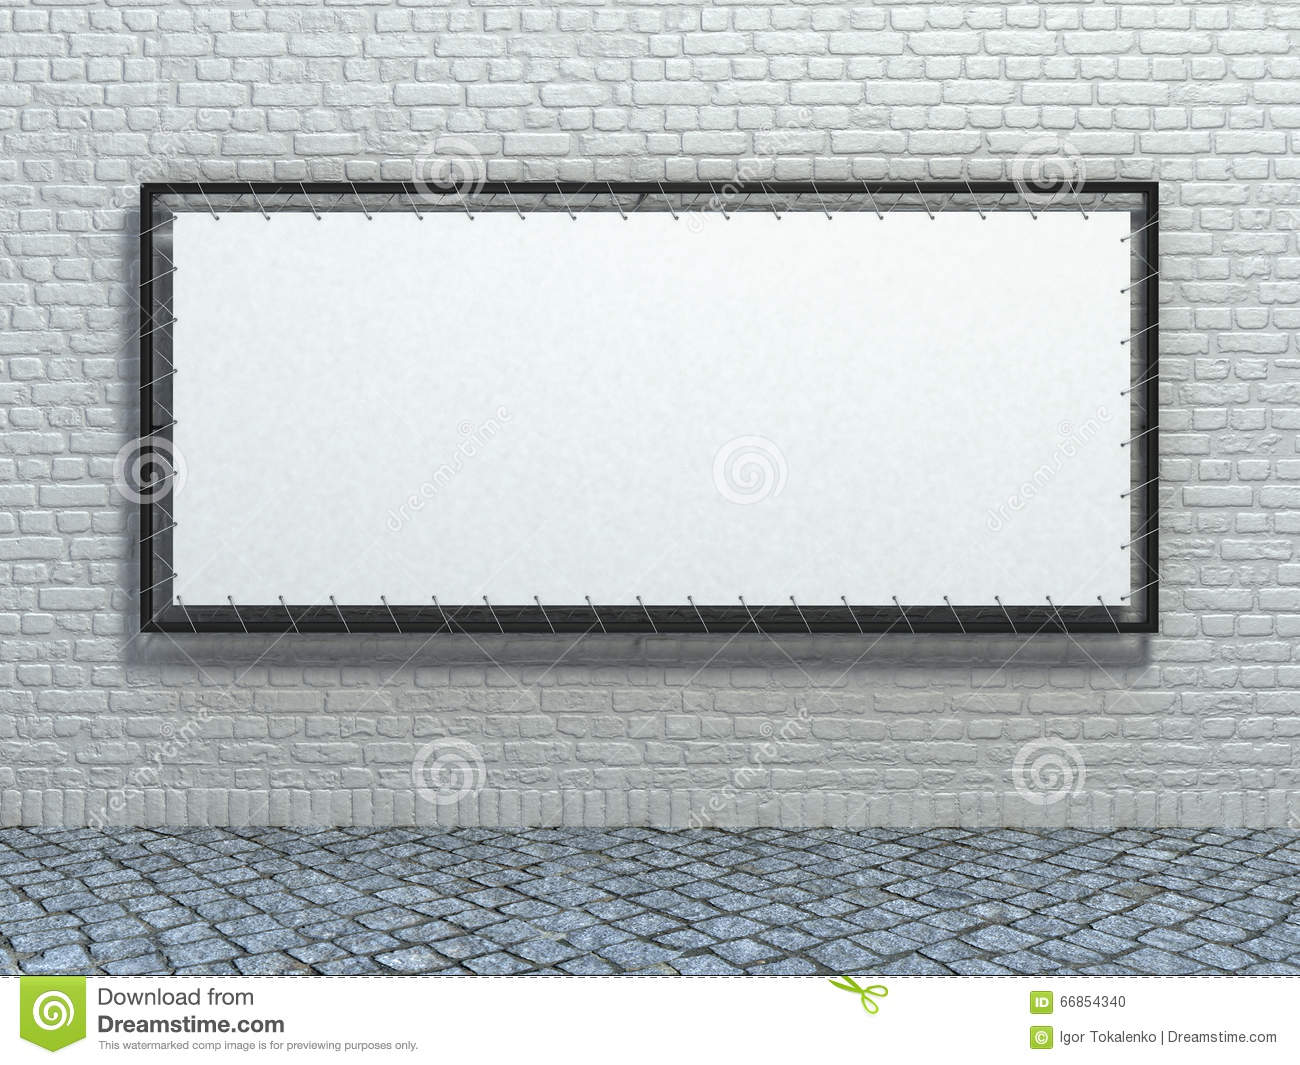 Background image stretch - White Stretch Banner On Brick Wall Background Stock Photo